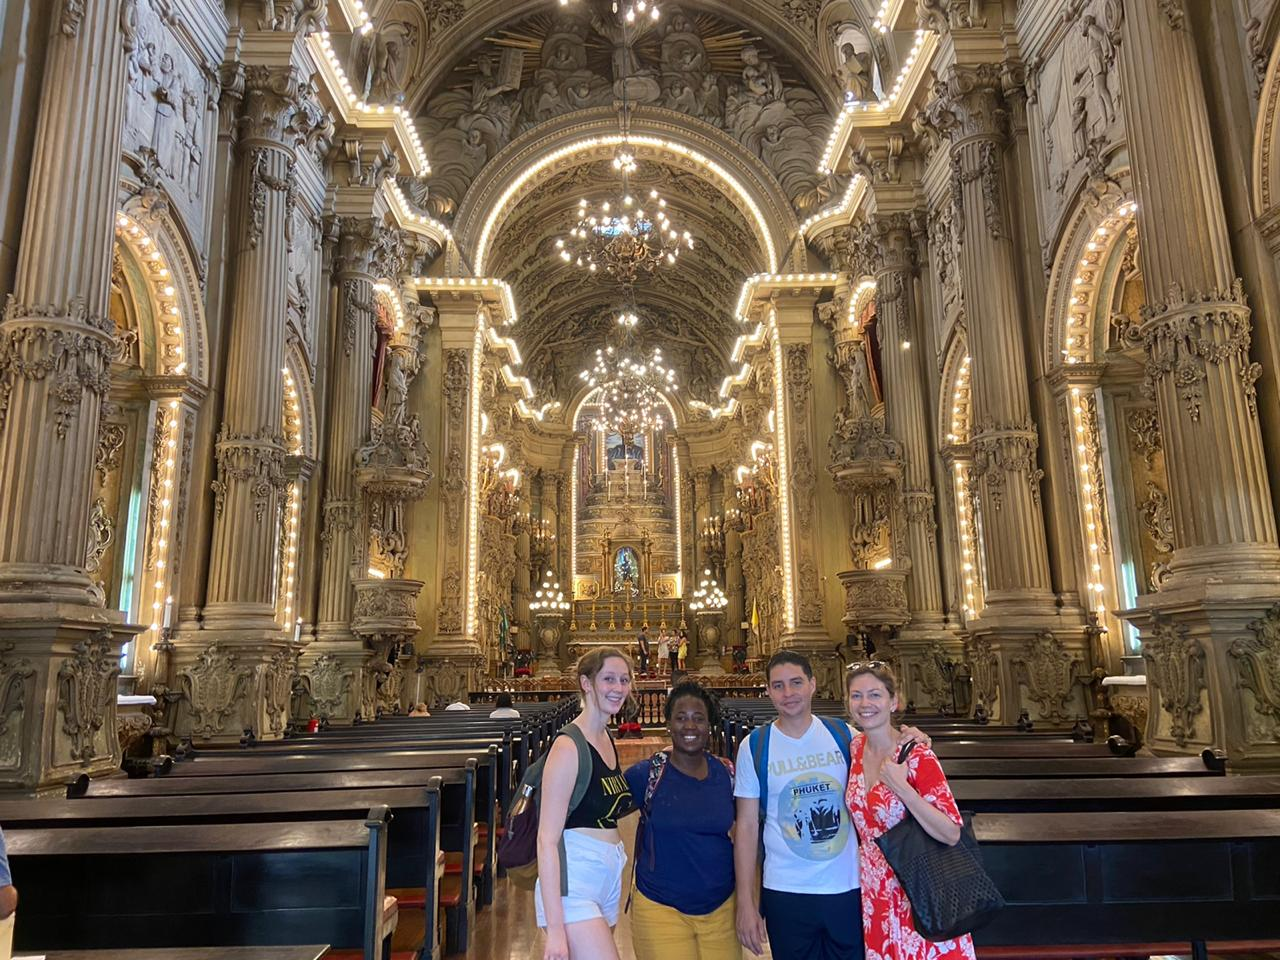 Students in the Church of São Francisco de Paula